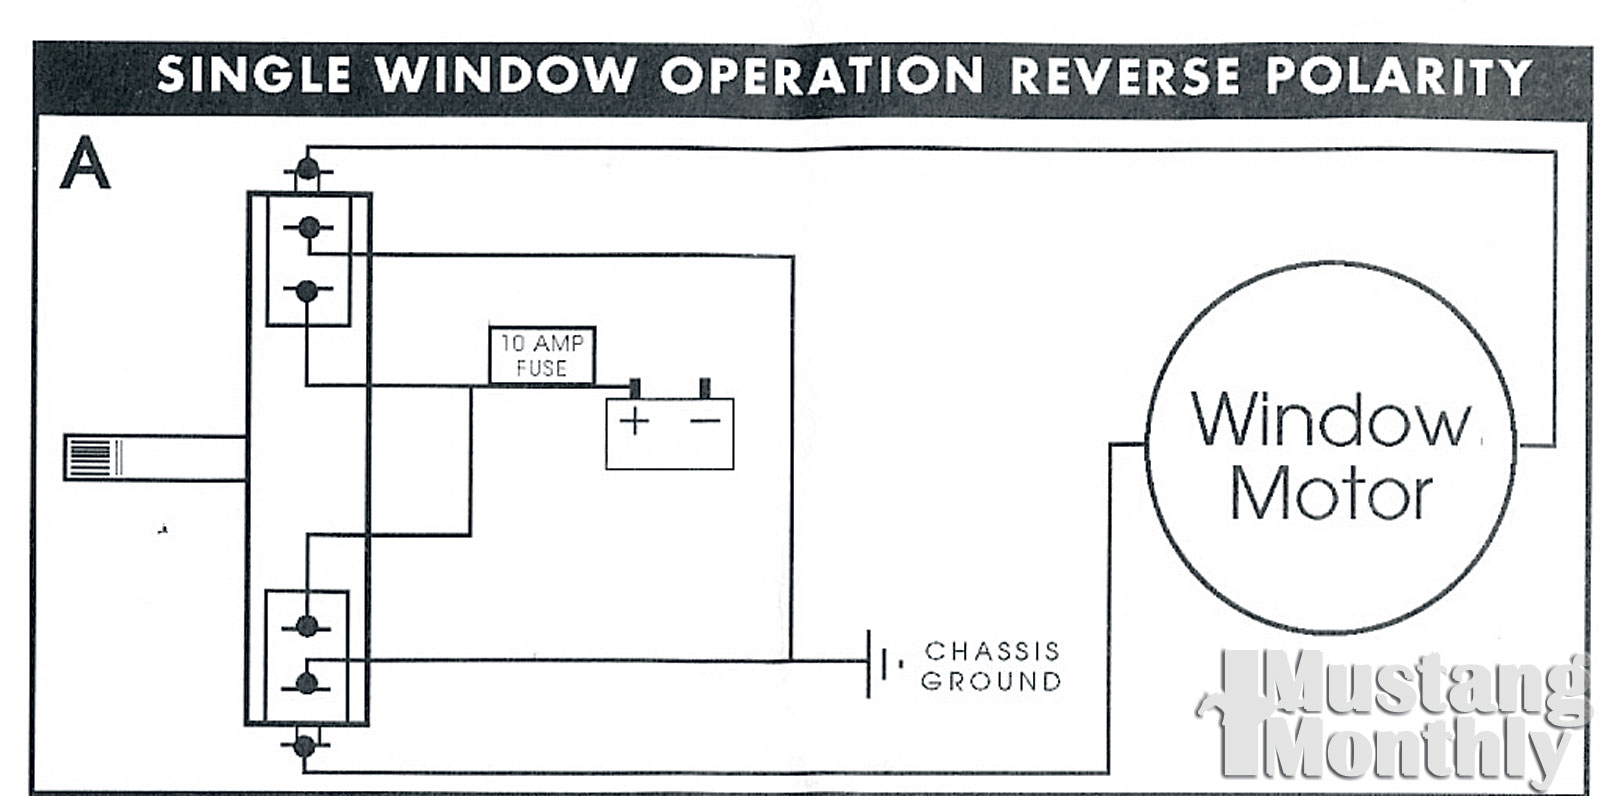 Mump 1107 20+electric Life Power Windows+single Window Wiring Diagram -  Photo 33848284 - Electric Life Power Window Conversion - Install Power  Windows - Project Reclaim | Window Motor Wiring Diagram |  | Mustang 360